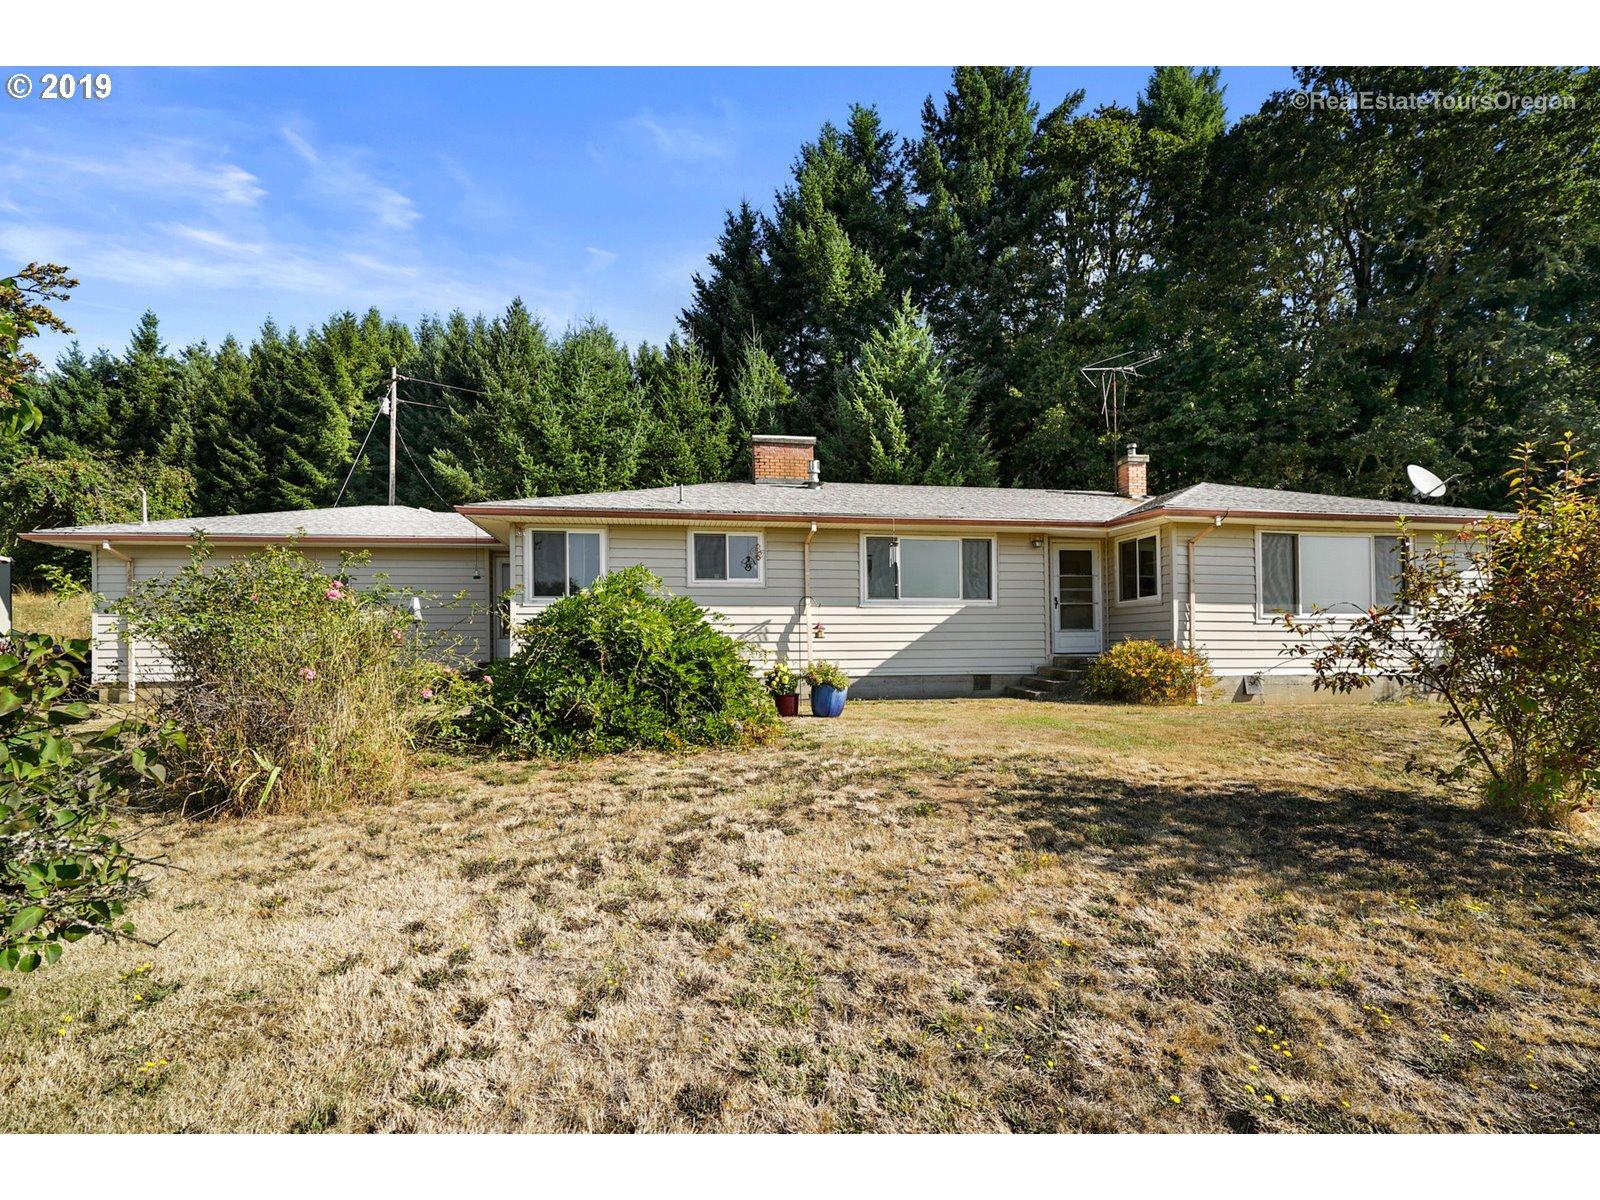 54795 Sw Roberts School Rd, Gaston OR 97119 - Photo 2